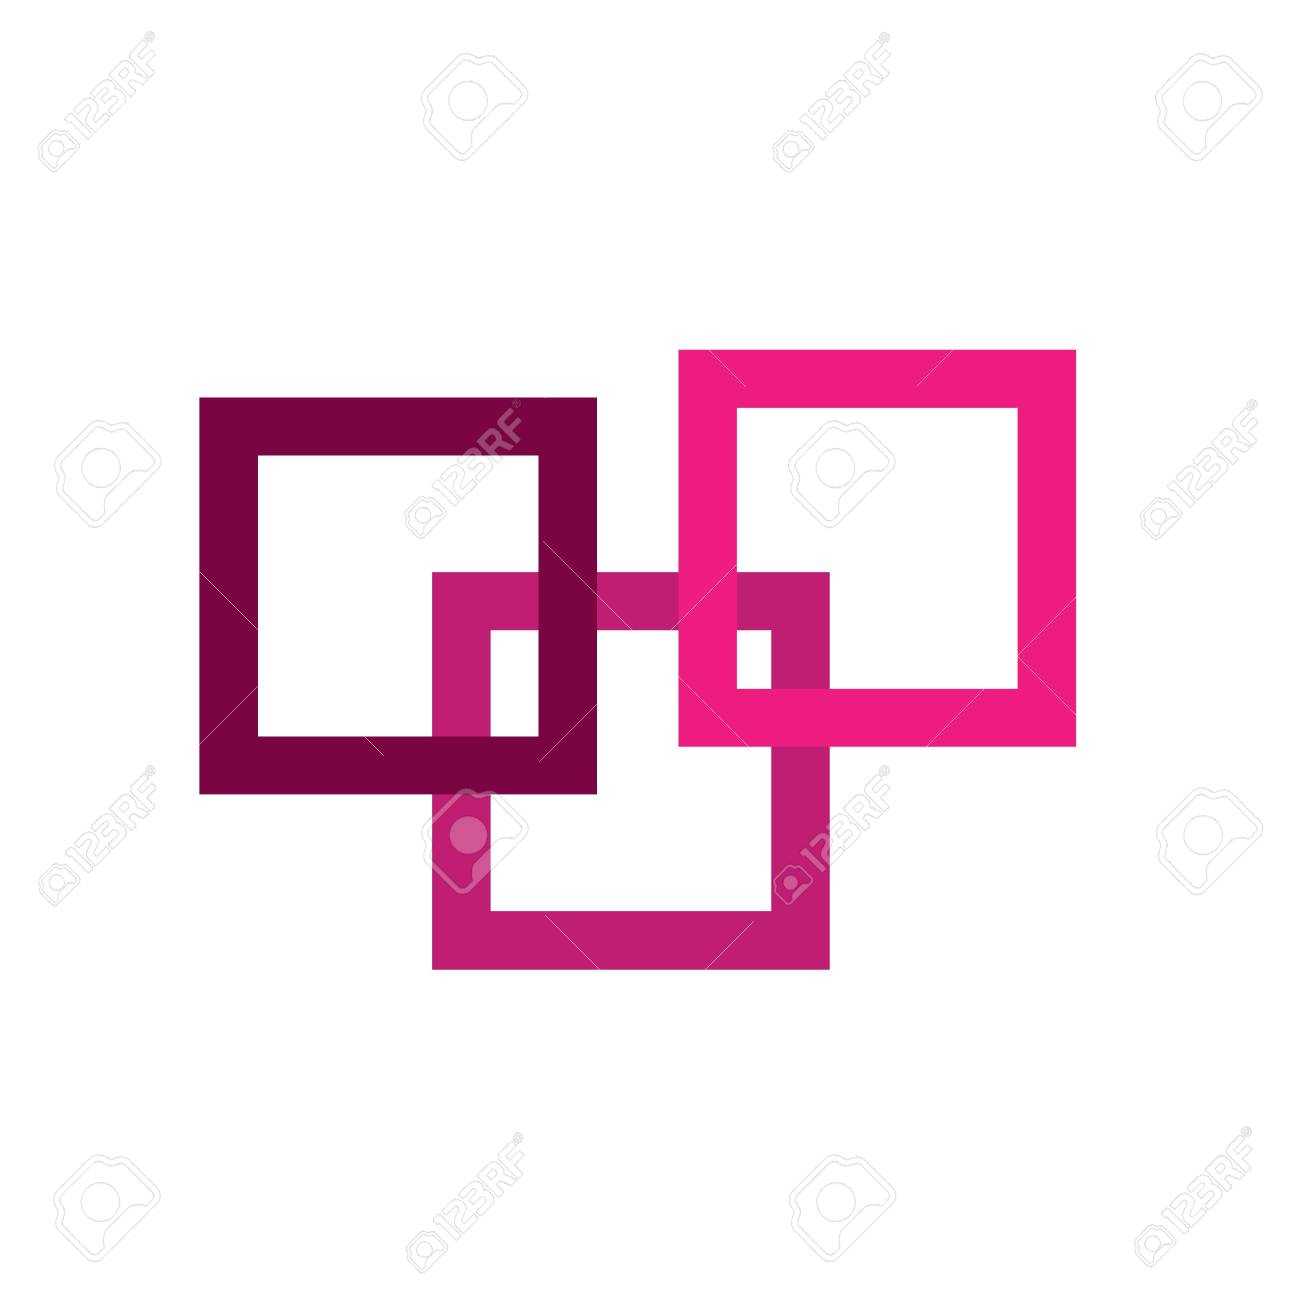 Pink abstract icon Stock Photo - 19396489